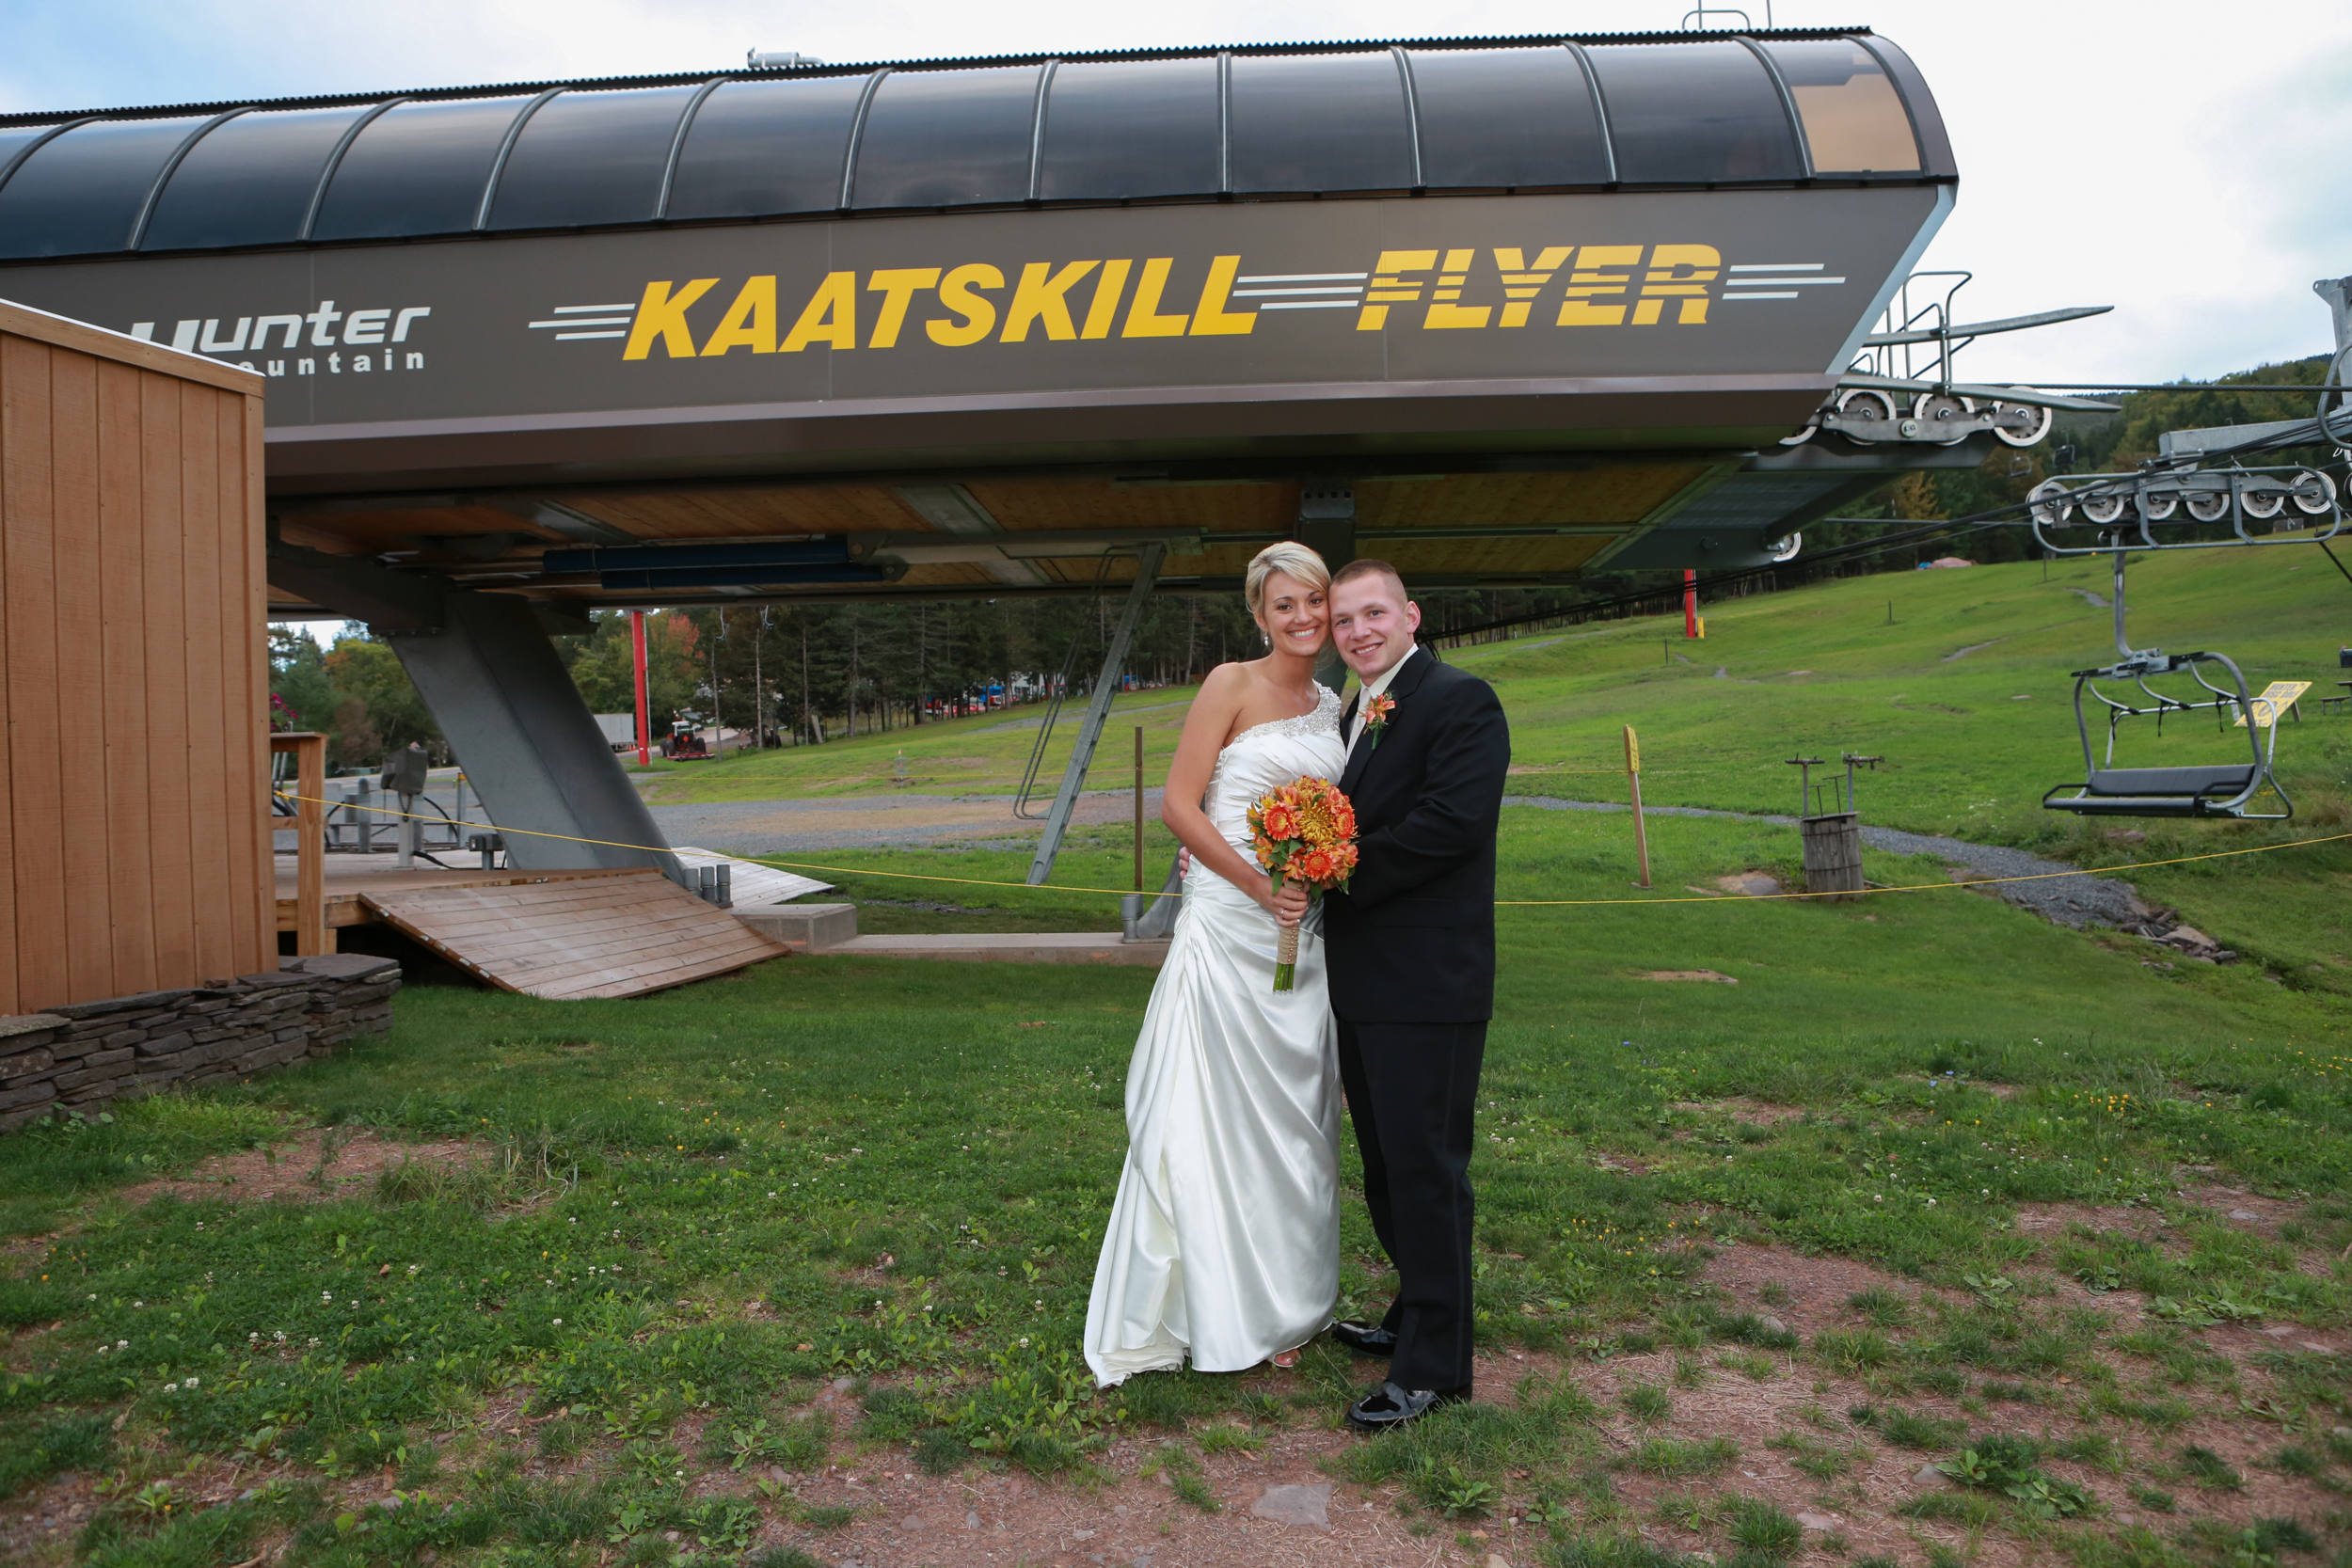 Wedding photo in front of the Kaatskill Flyer